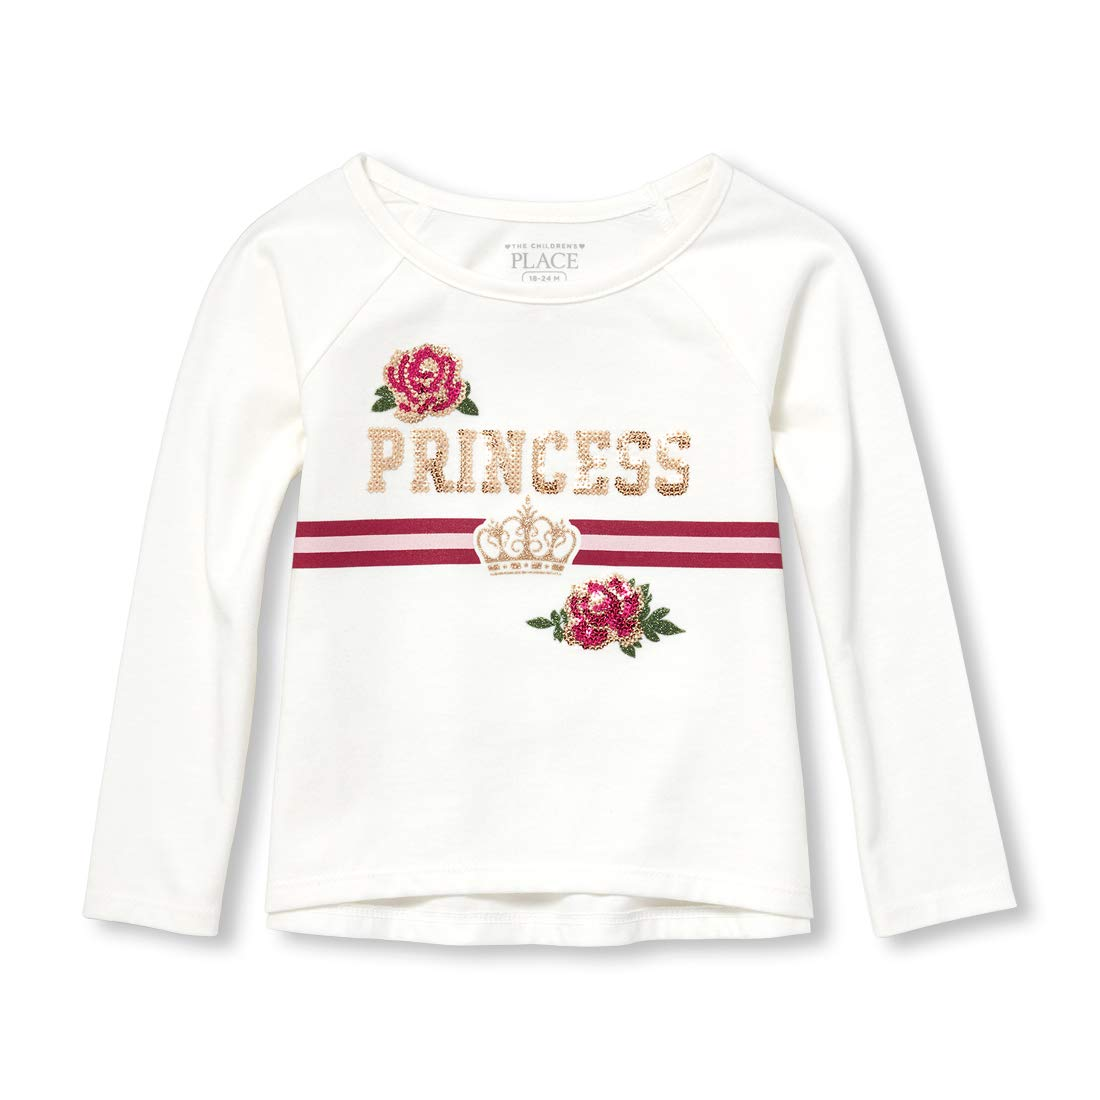 The Childrens Place Girls Toddler Long Sleeve Graphic Shirt